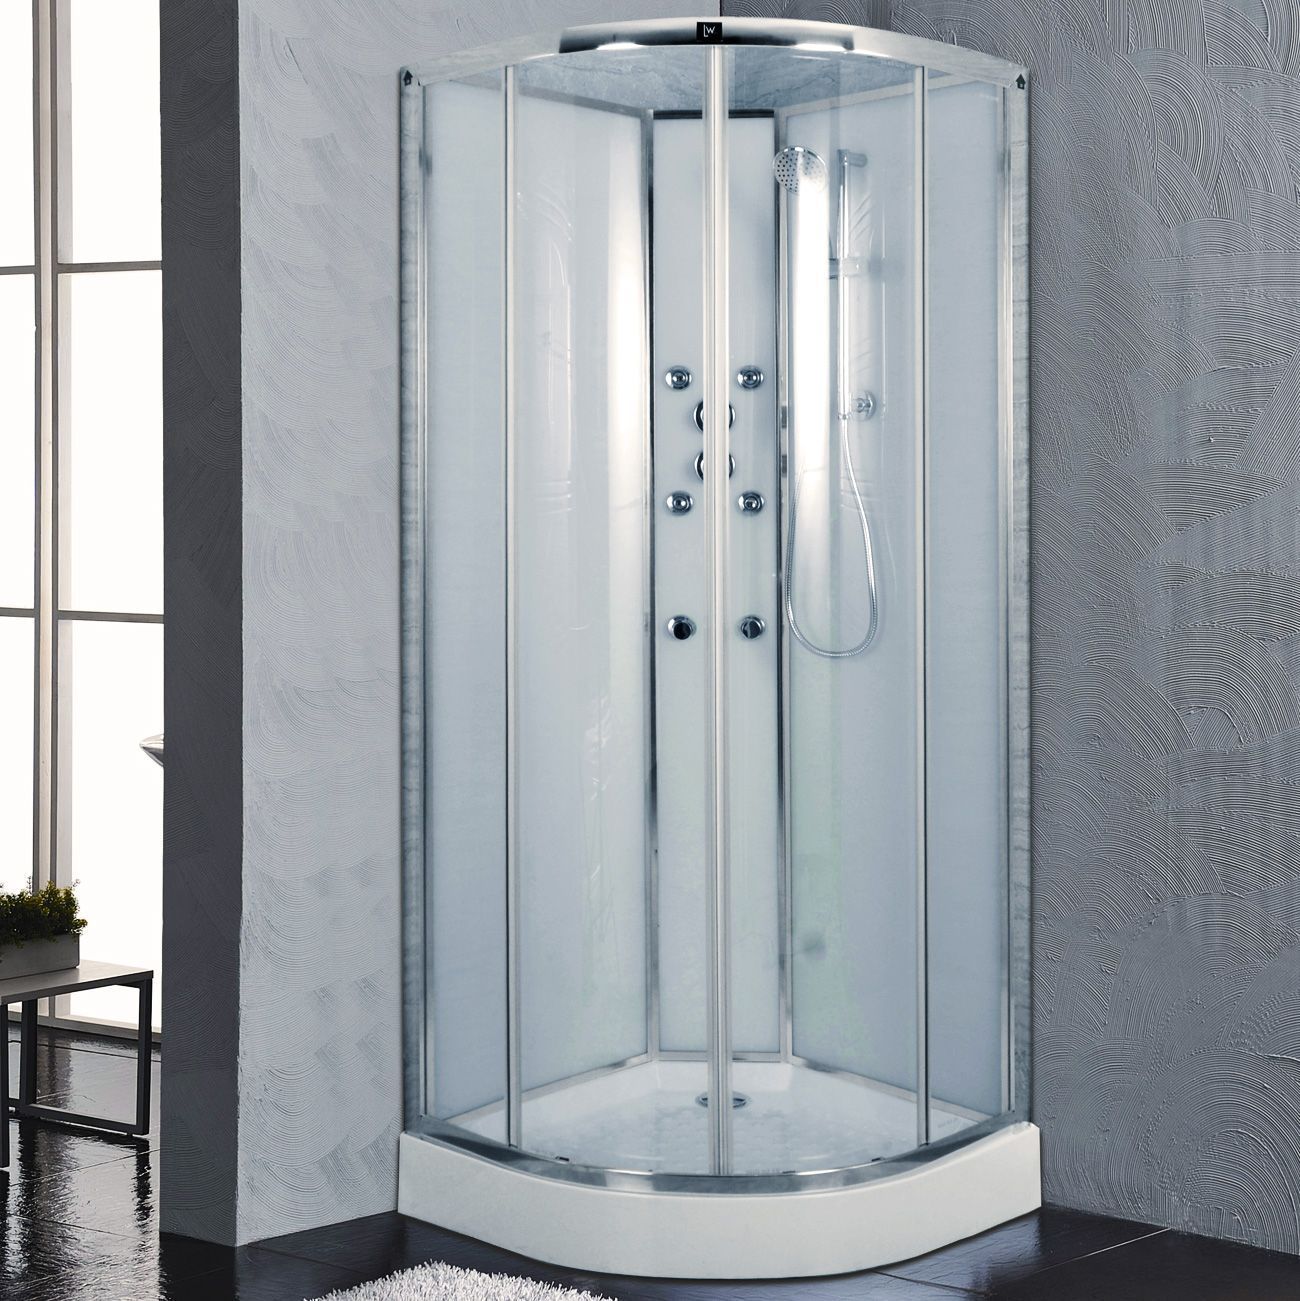 Sydney 800mm Quadrant Hydro Shower Cabin with Massage Jets - JT13 ...